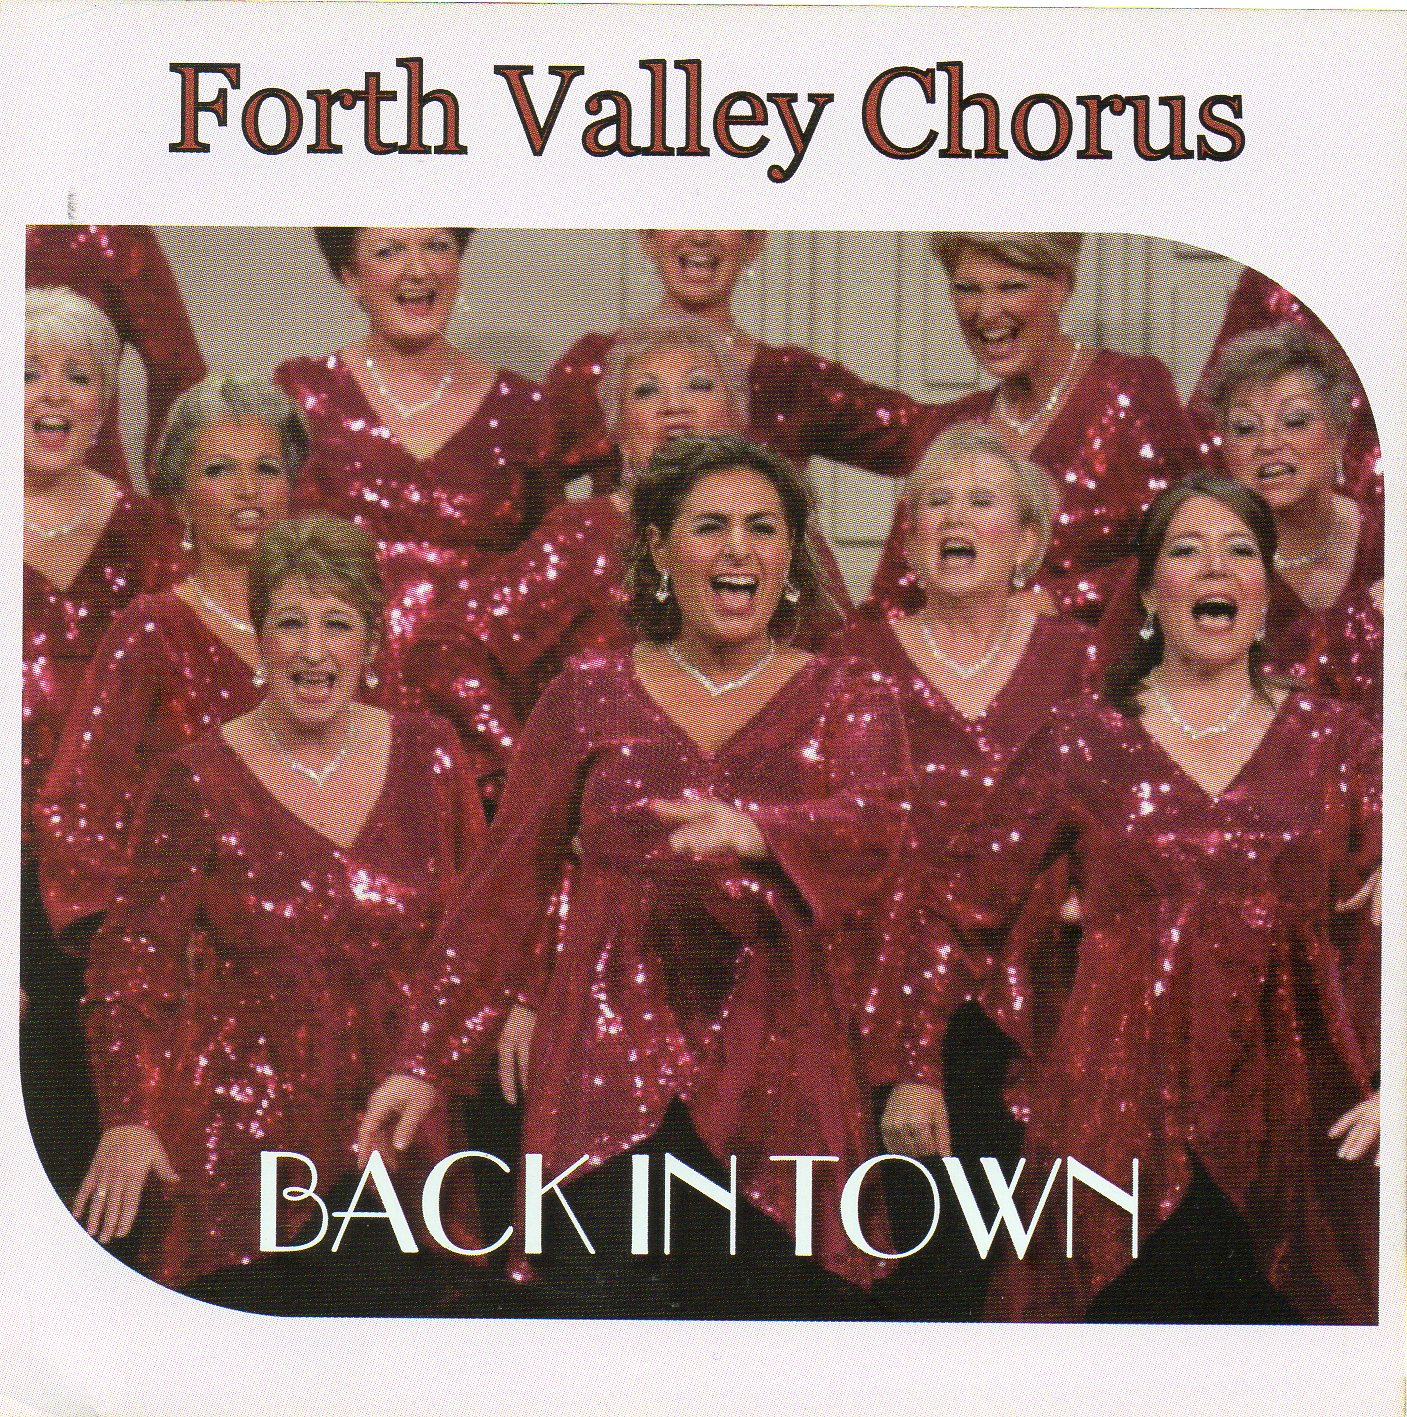 Back in Town CD cover